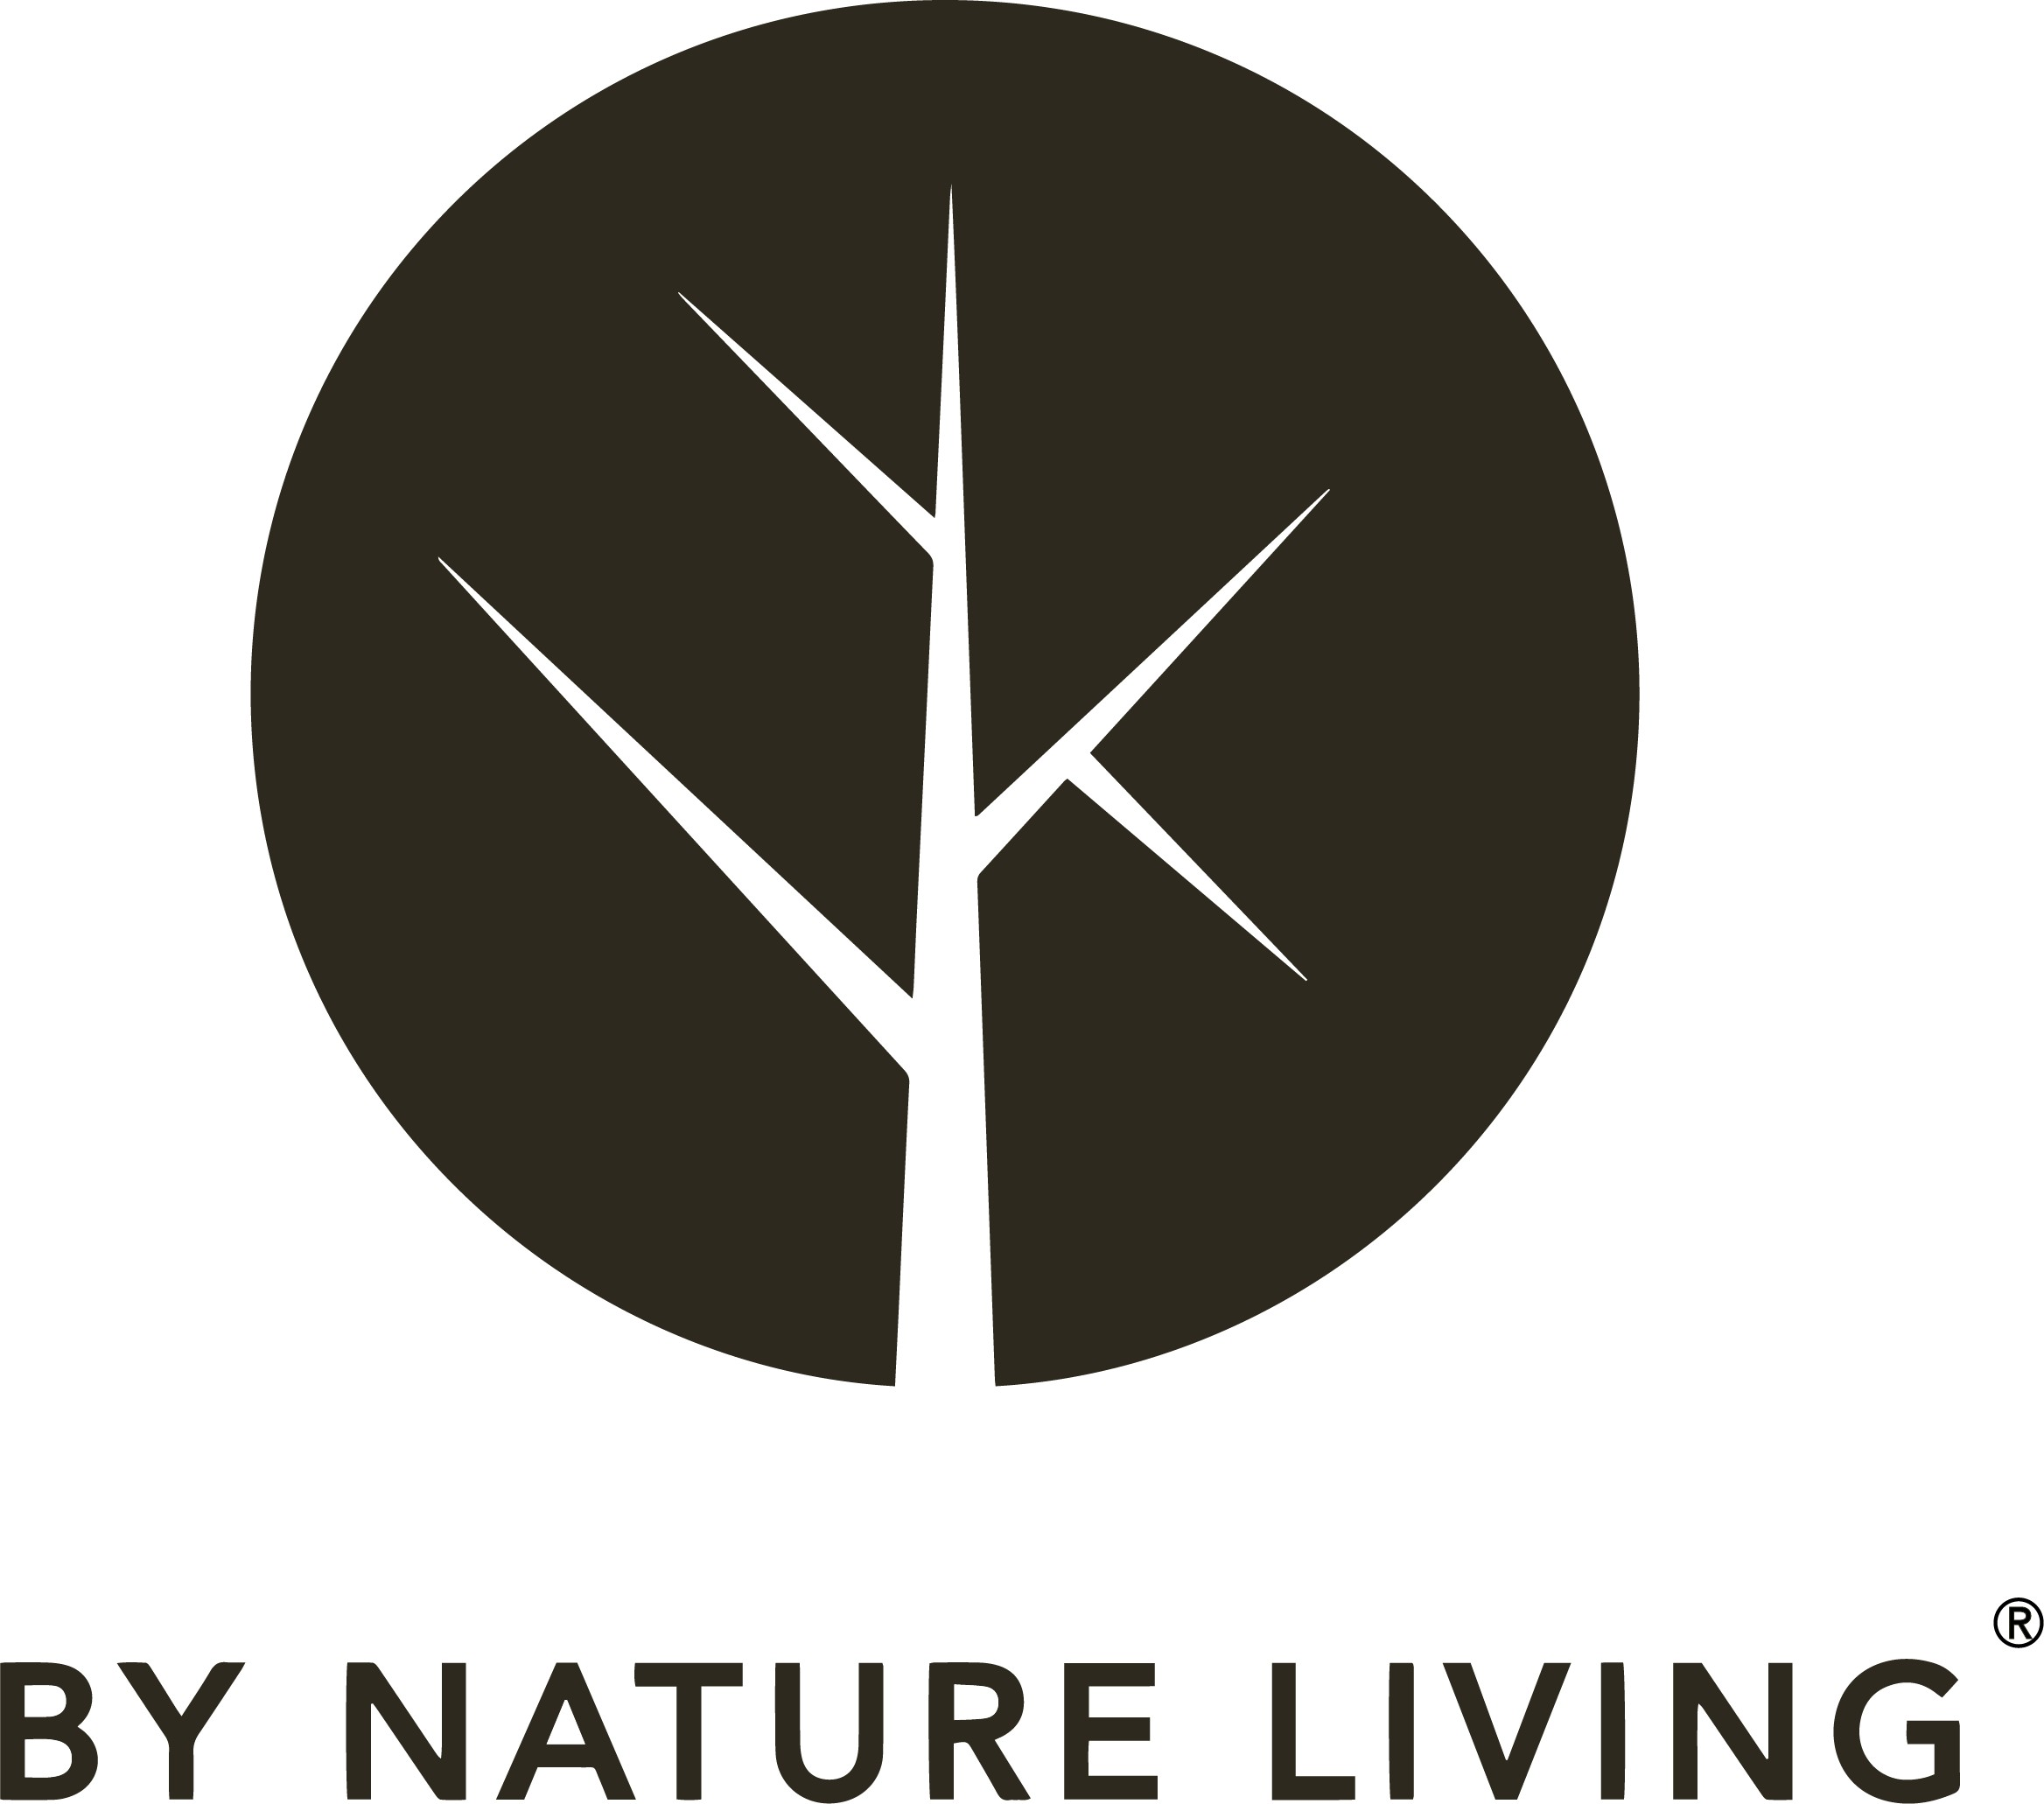 By Nature Living